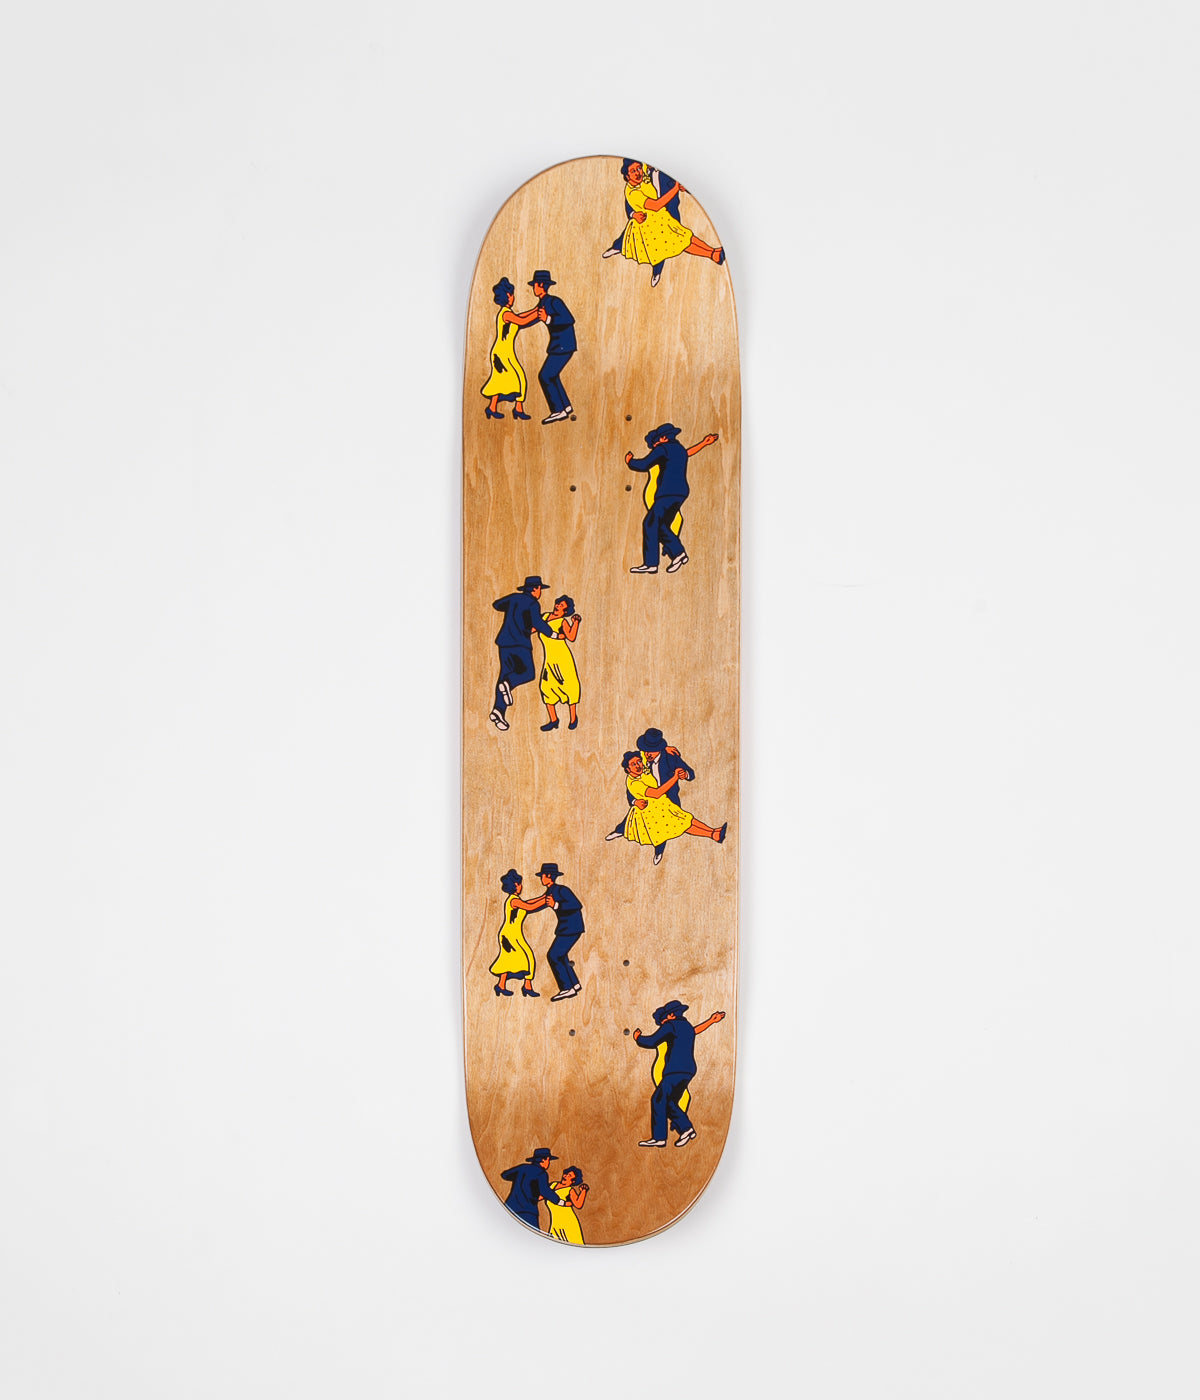 Skateboard Cafe Dancers Deck - 8.25""